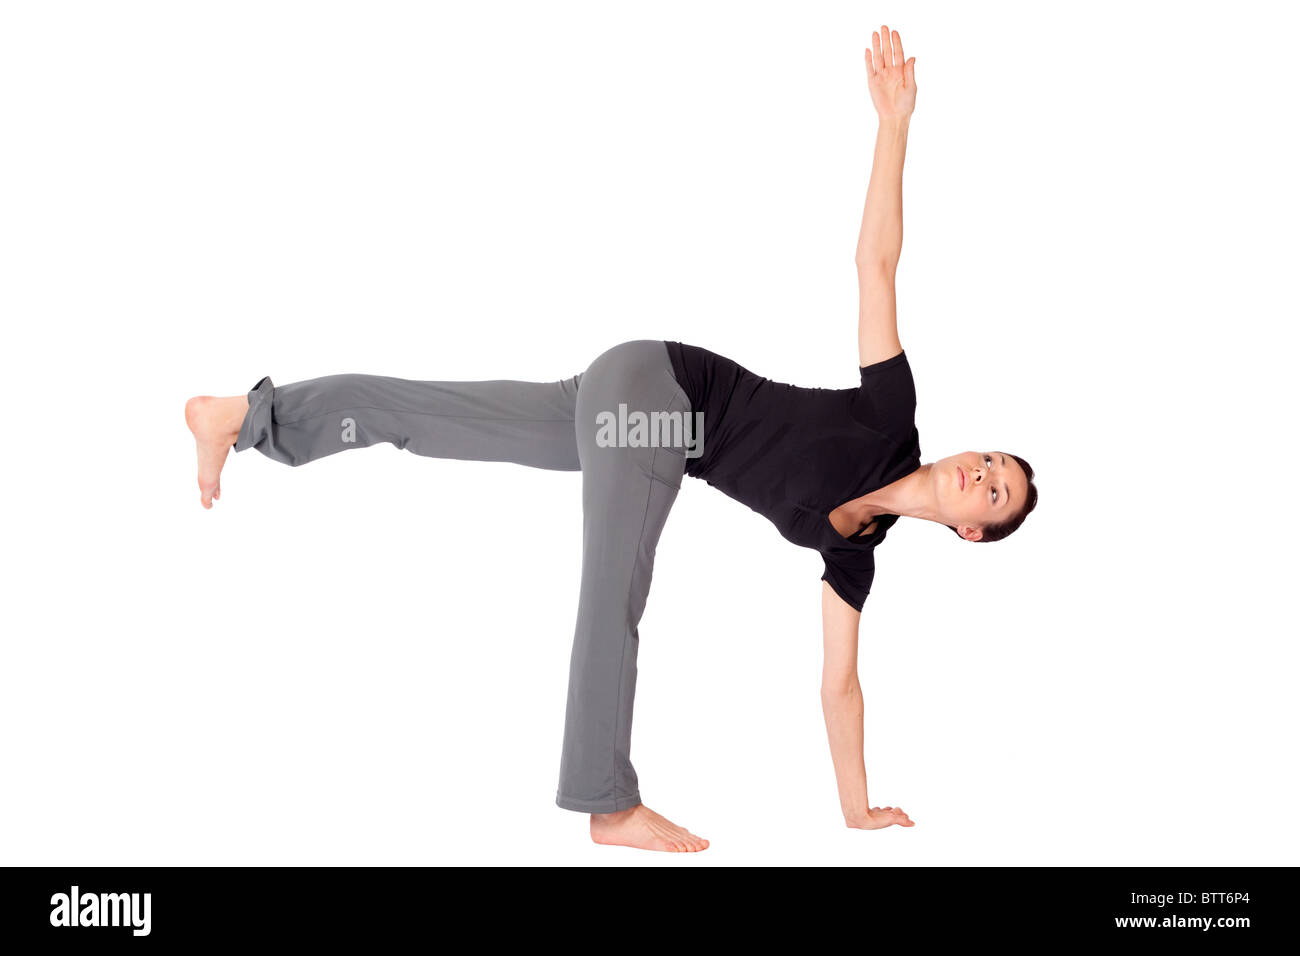 Young Fit Woman Doing Yoga Exercise Called Half Moon Sanskrit Name Parivrtta Ardhachandrasana Isolated On White Background